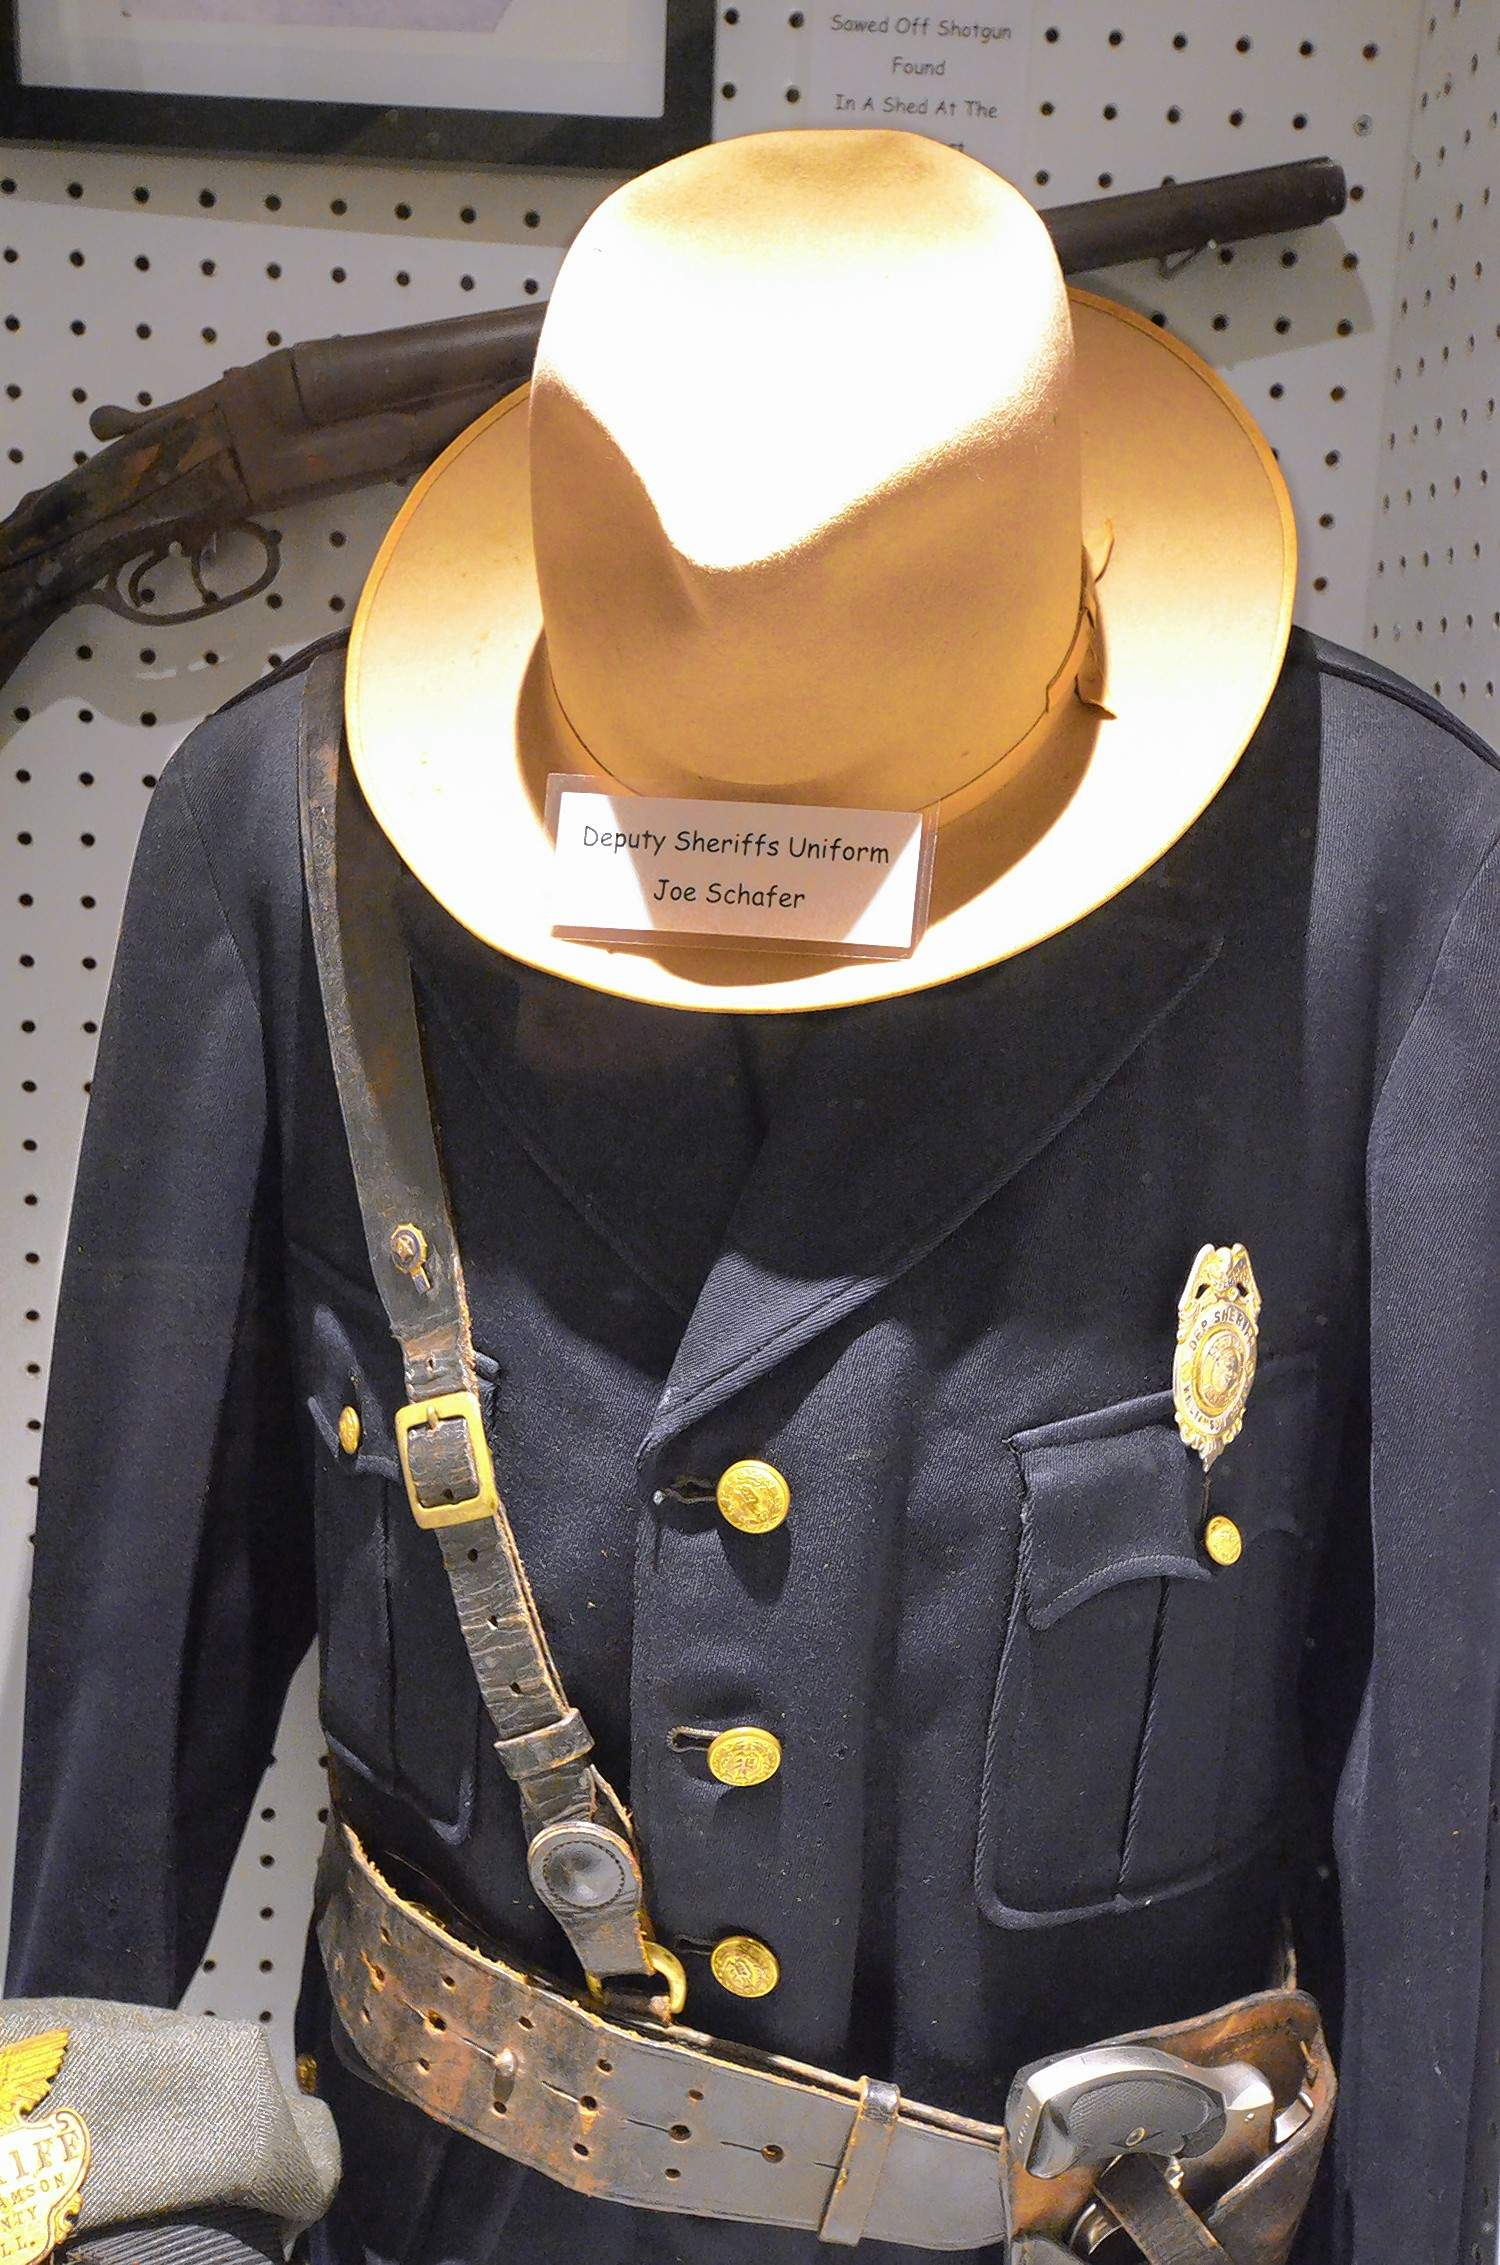 This uniform that once belonged to Williamson County Deputy Sheriff Joe Schafer is among the many items housed in the Historical Society's museum in downtown Marion. Schafer's hat shown here was recently donated to the museum by Schafer's descendants.